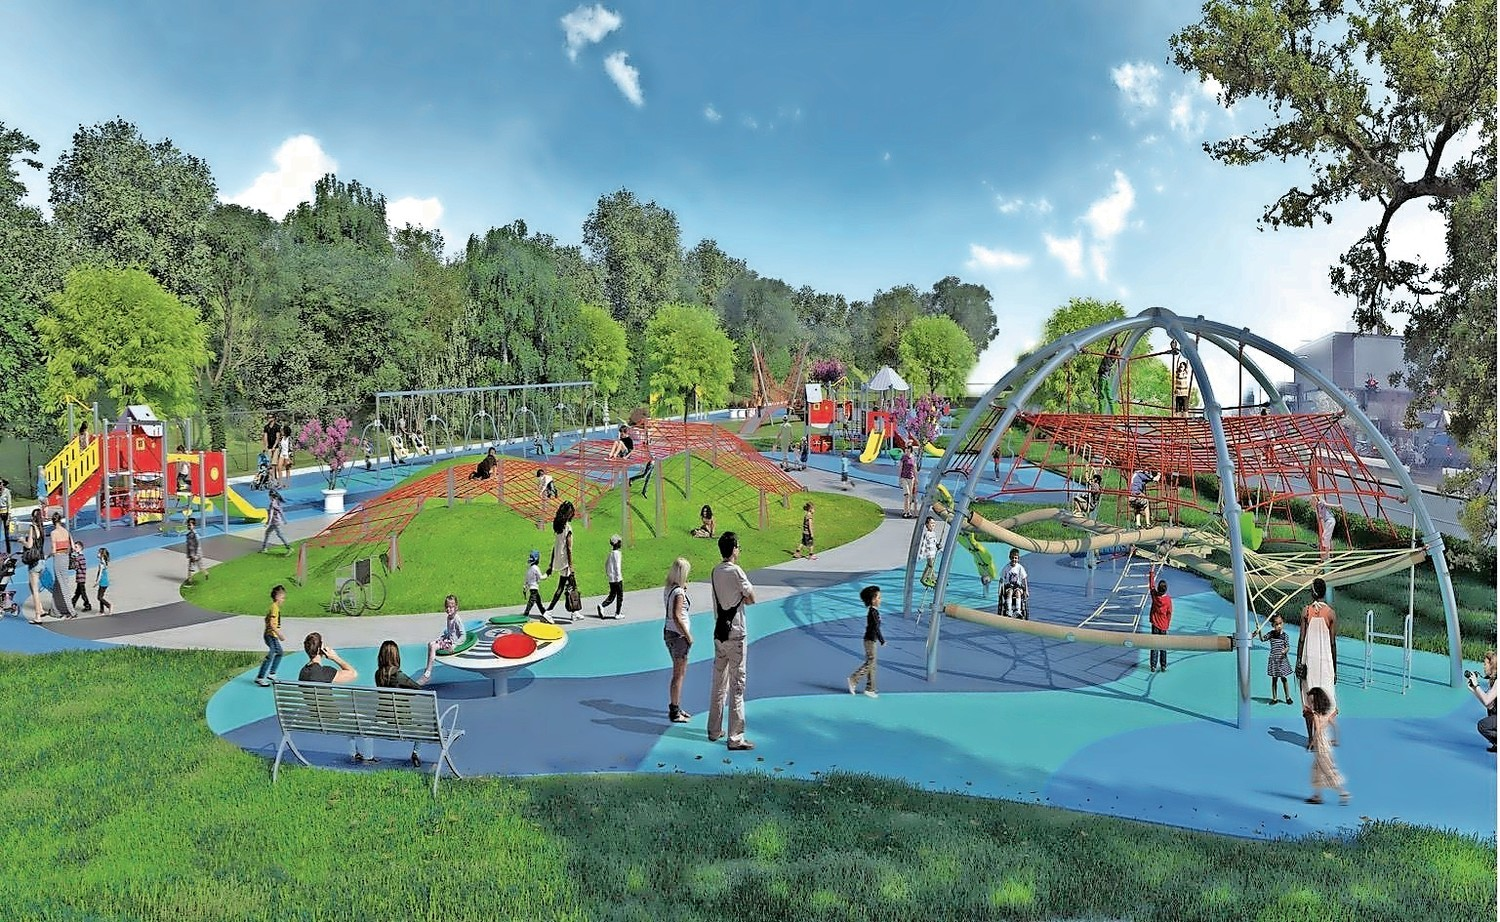 Event proceeds will go toward Mr. B's Playground. Original plans for the space, pictured, are expected to change slightly after the village decided in October to move its planned site to adjacent to the John A. Anderson Recreation Center.